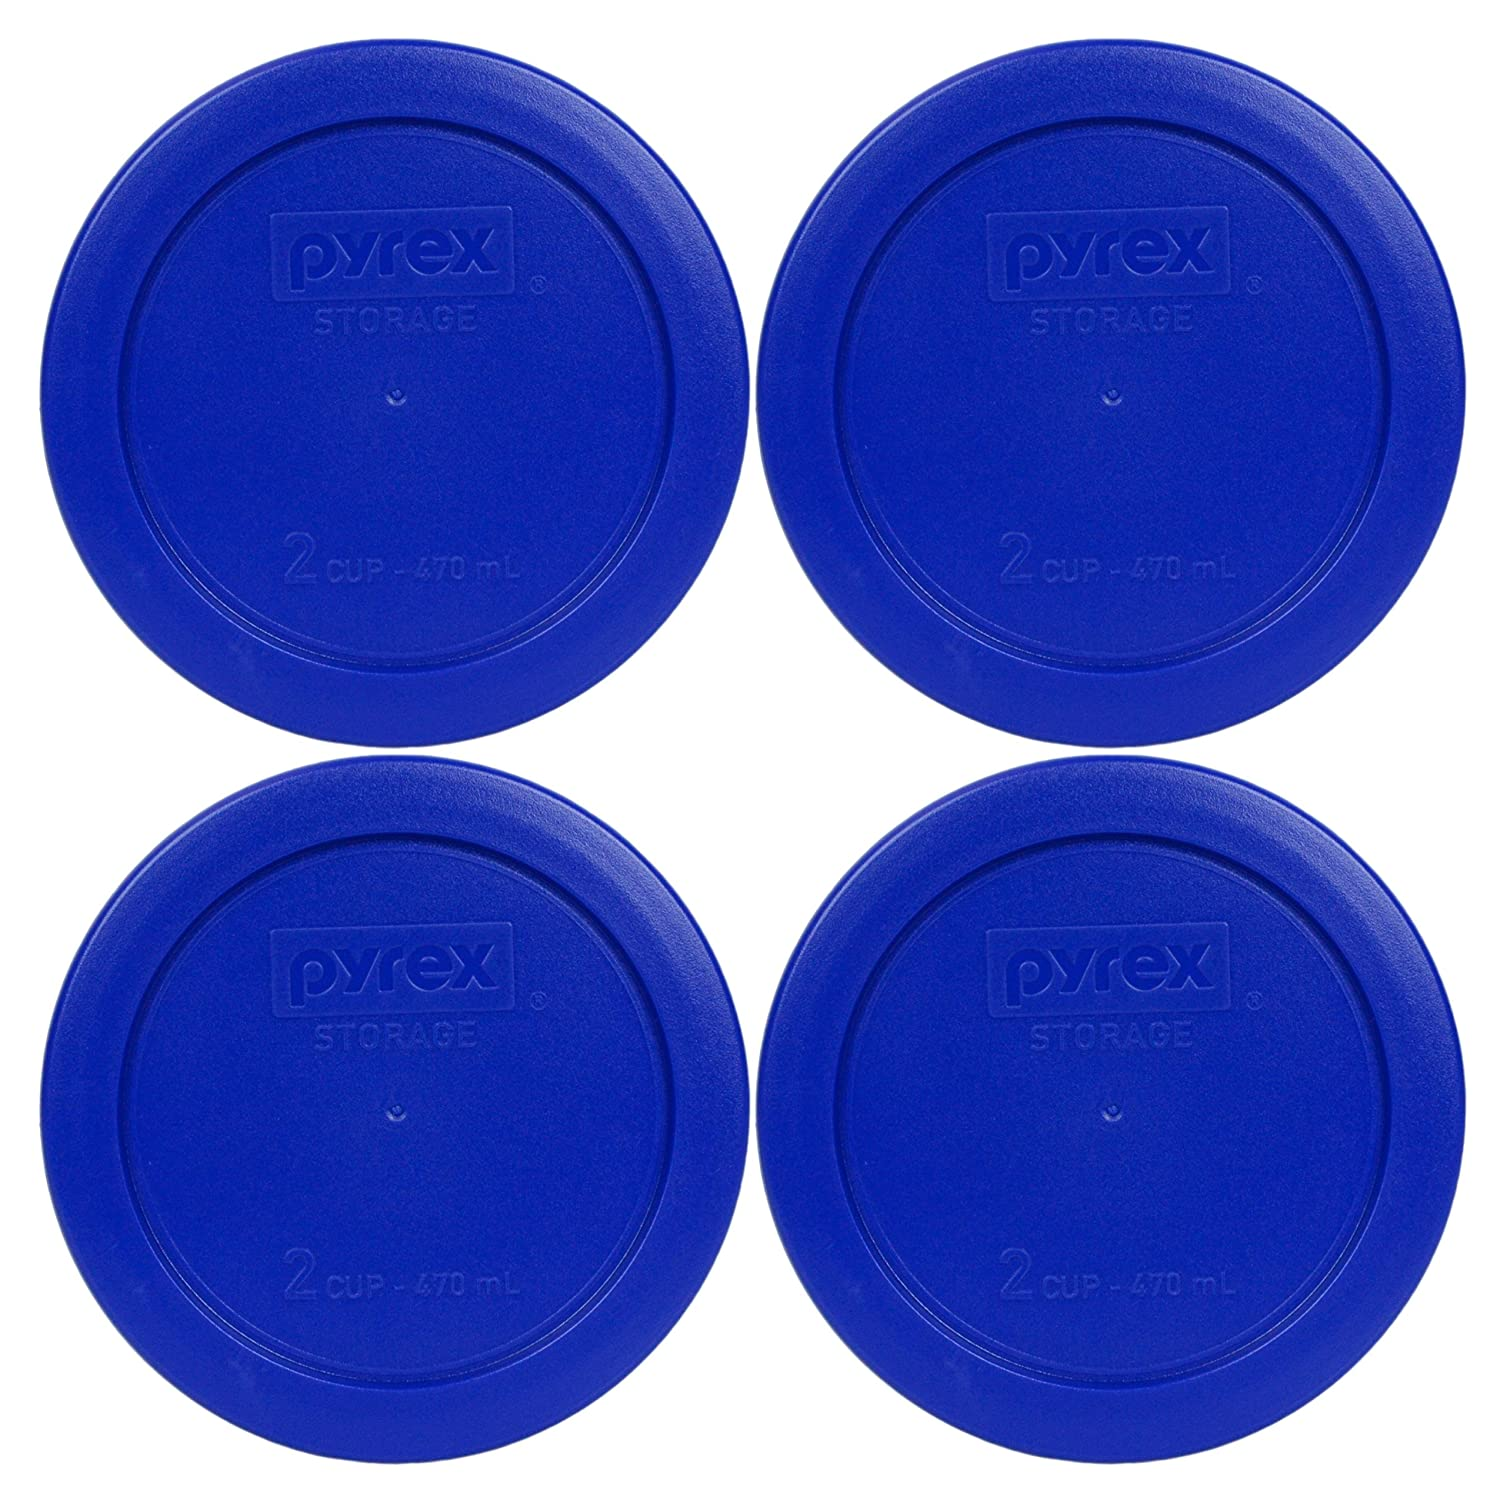 4 Pack! Pyrex Light Blue 2 Cup Round Storage Cover Item Number 7200-PC for Glass Bowls - True BlueReplacement Lid for Pyrex 2 Cup Bowls by Pyrex